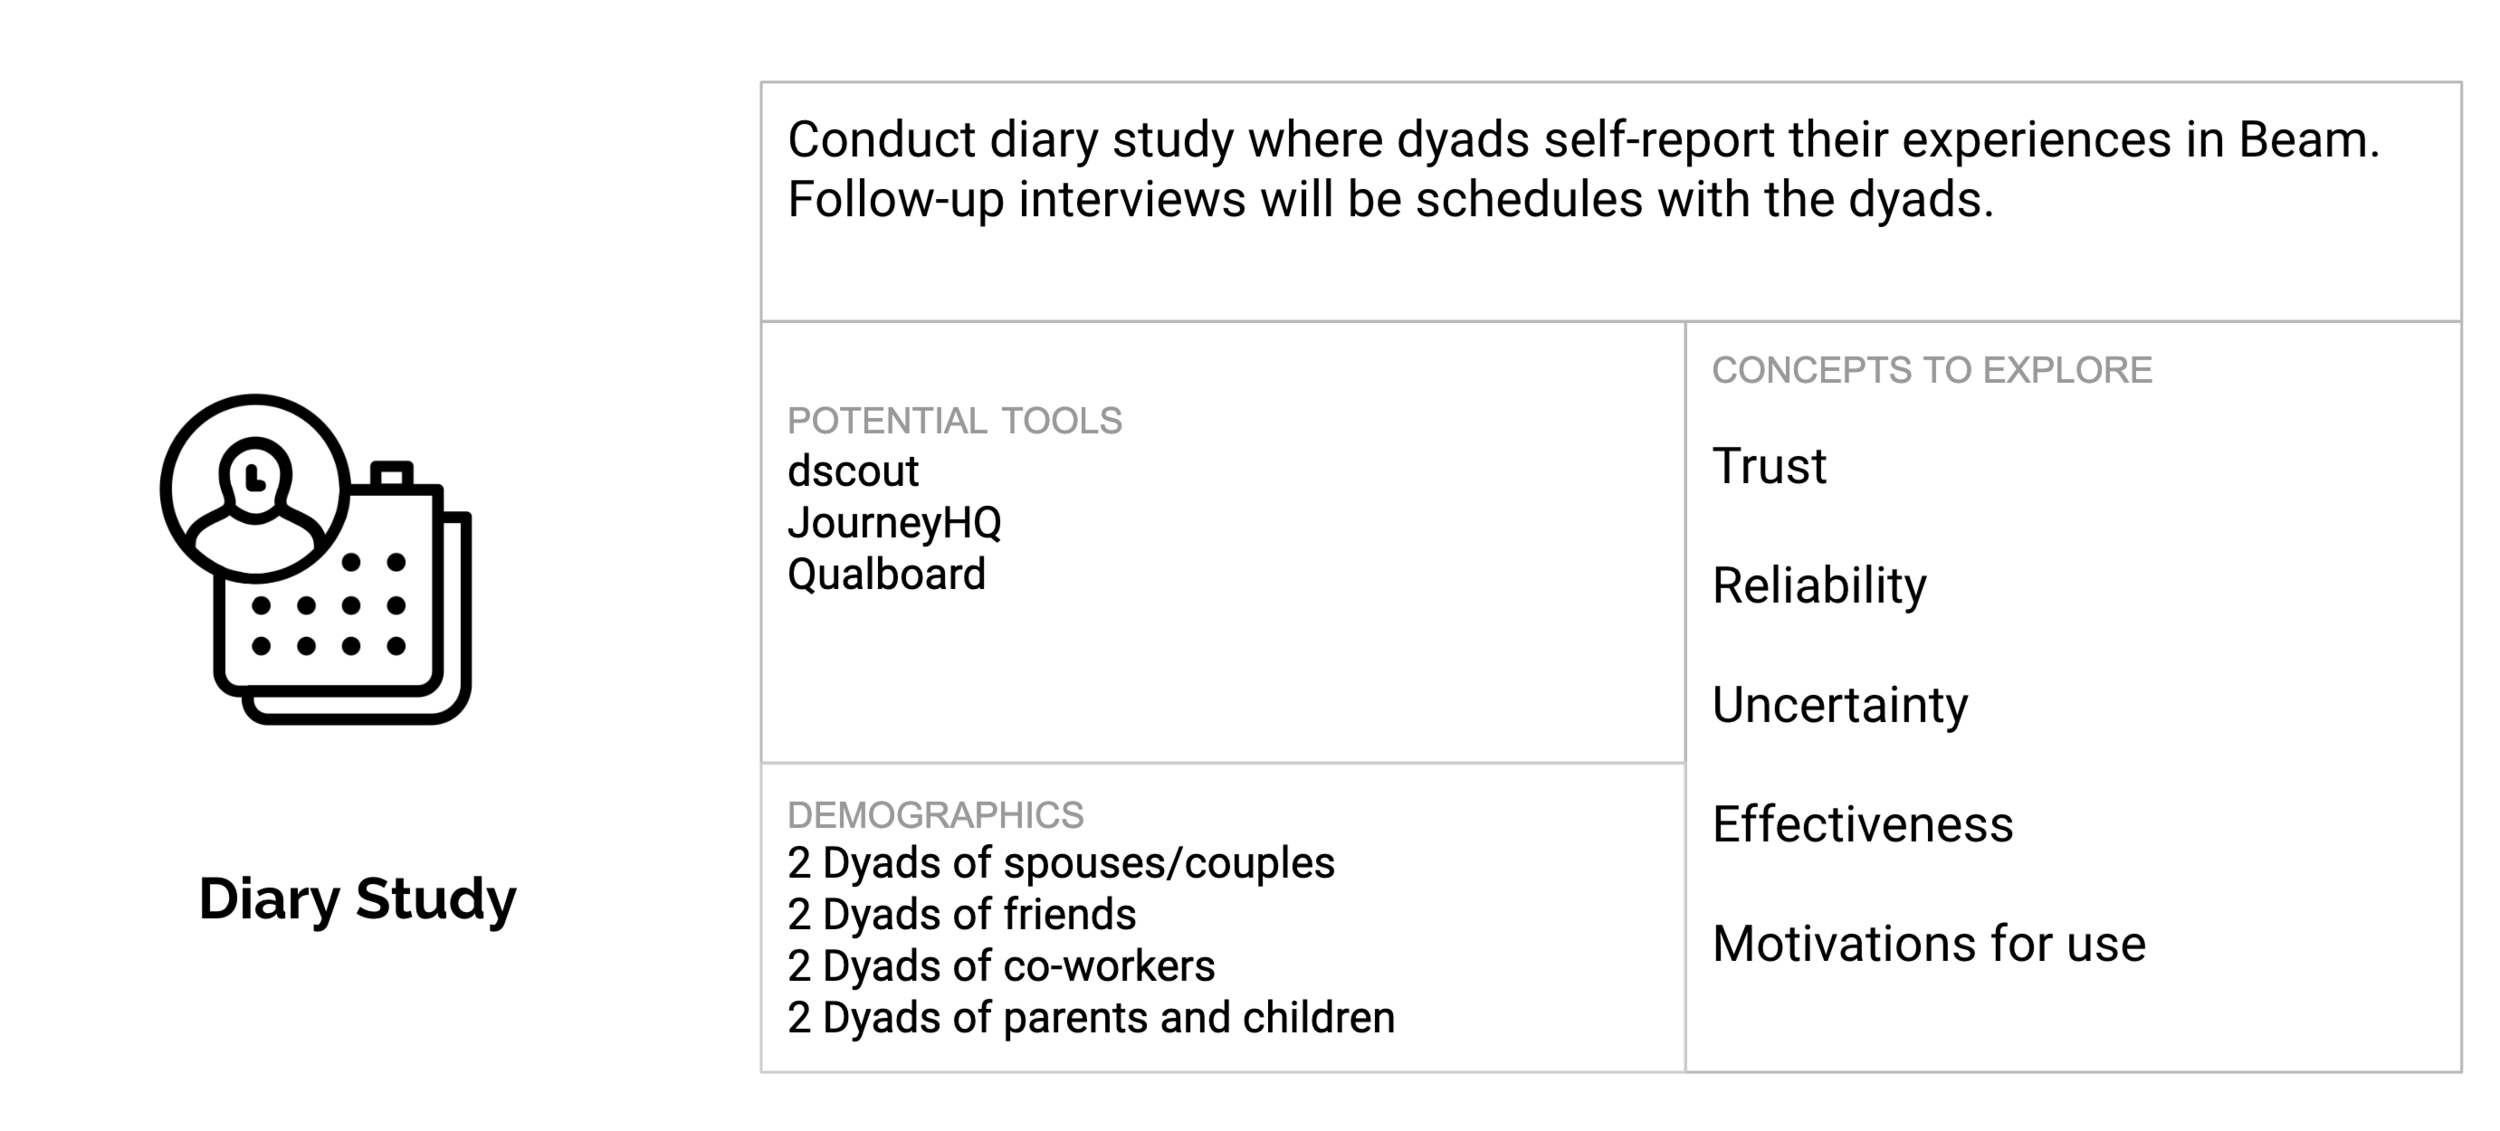 Conduct diary study with dyads of the product over 3 weeks.